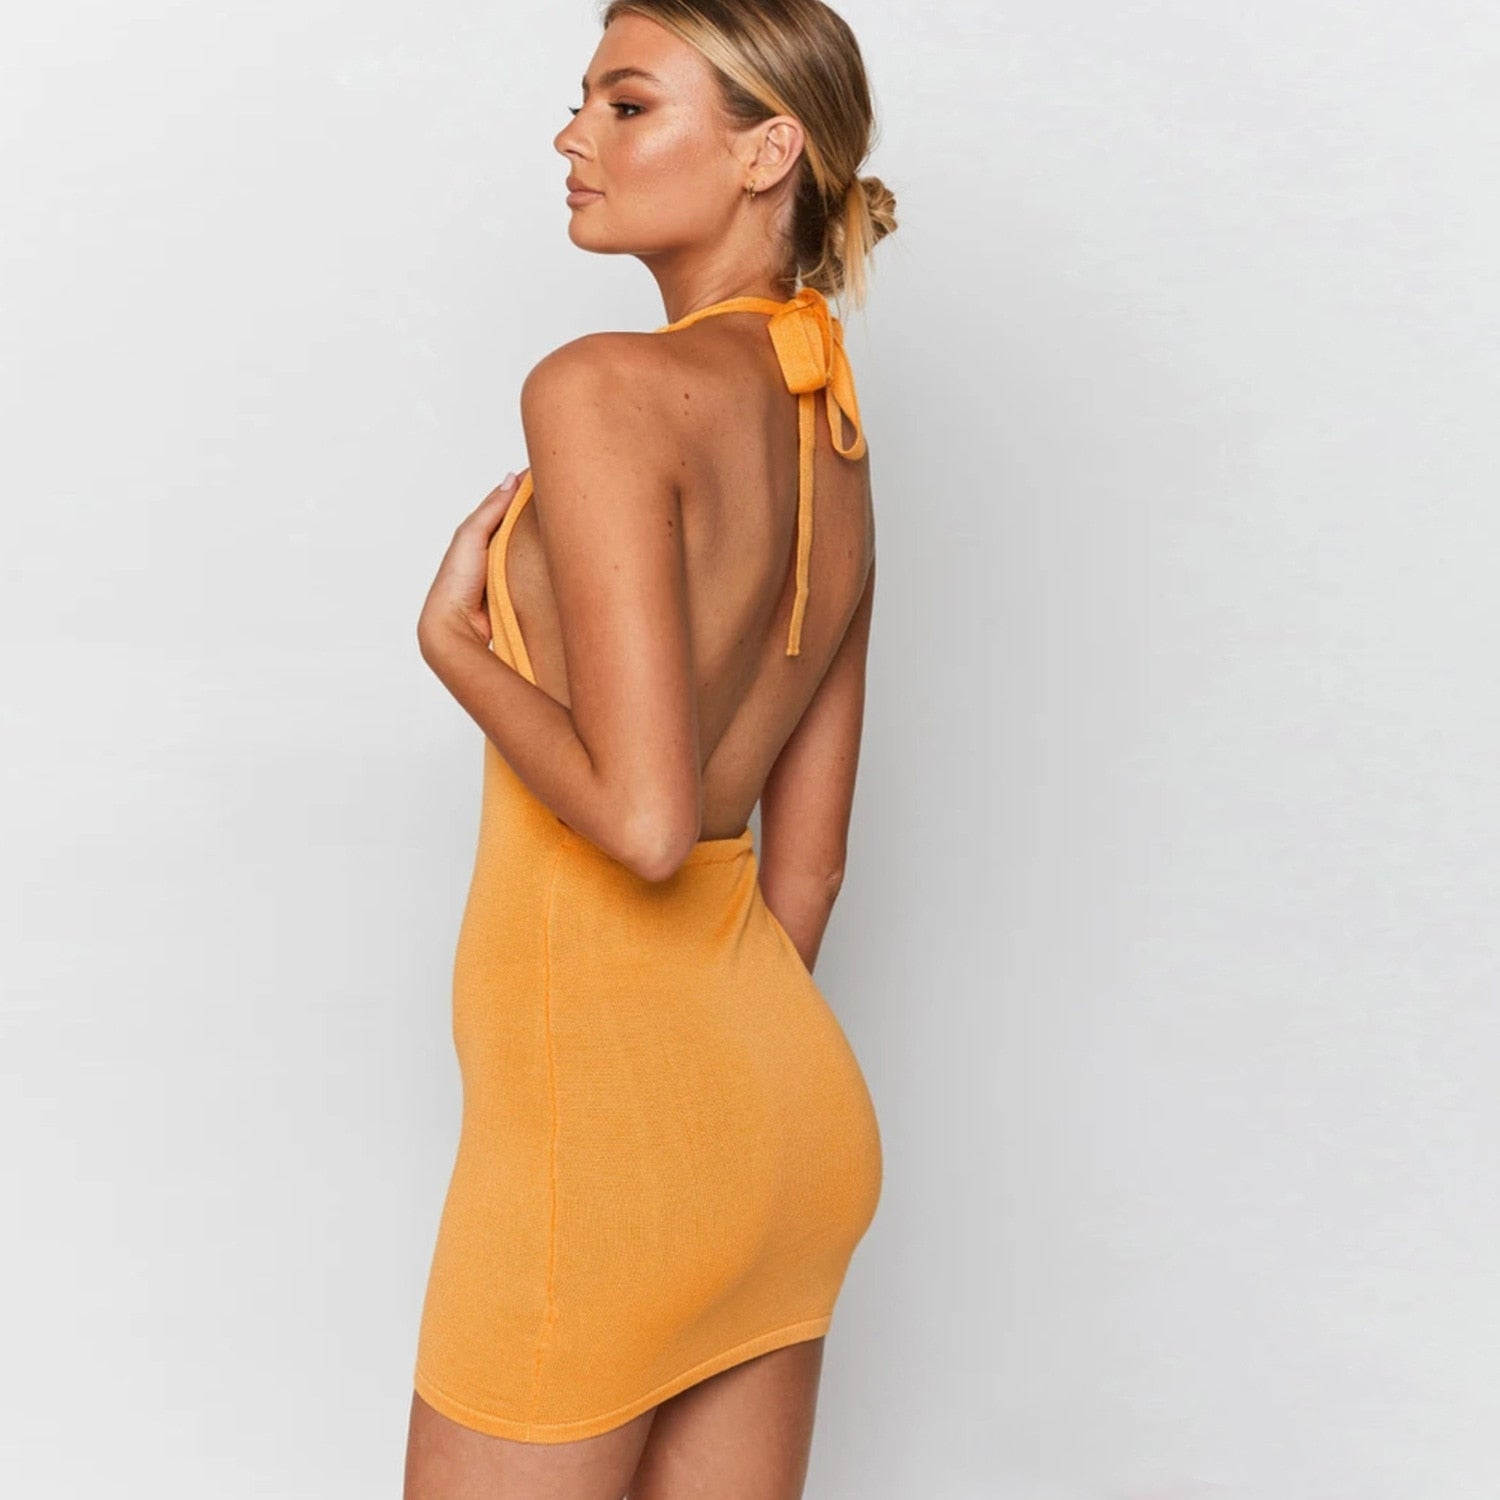 Cryptographic Halter Sexy Backless Mini Dresses Bodycon Skinny Club Party Sleeveless Knitted Dress Fall Streetwear Beach Holiday